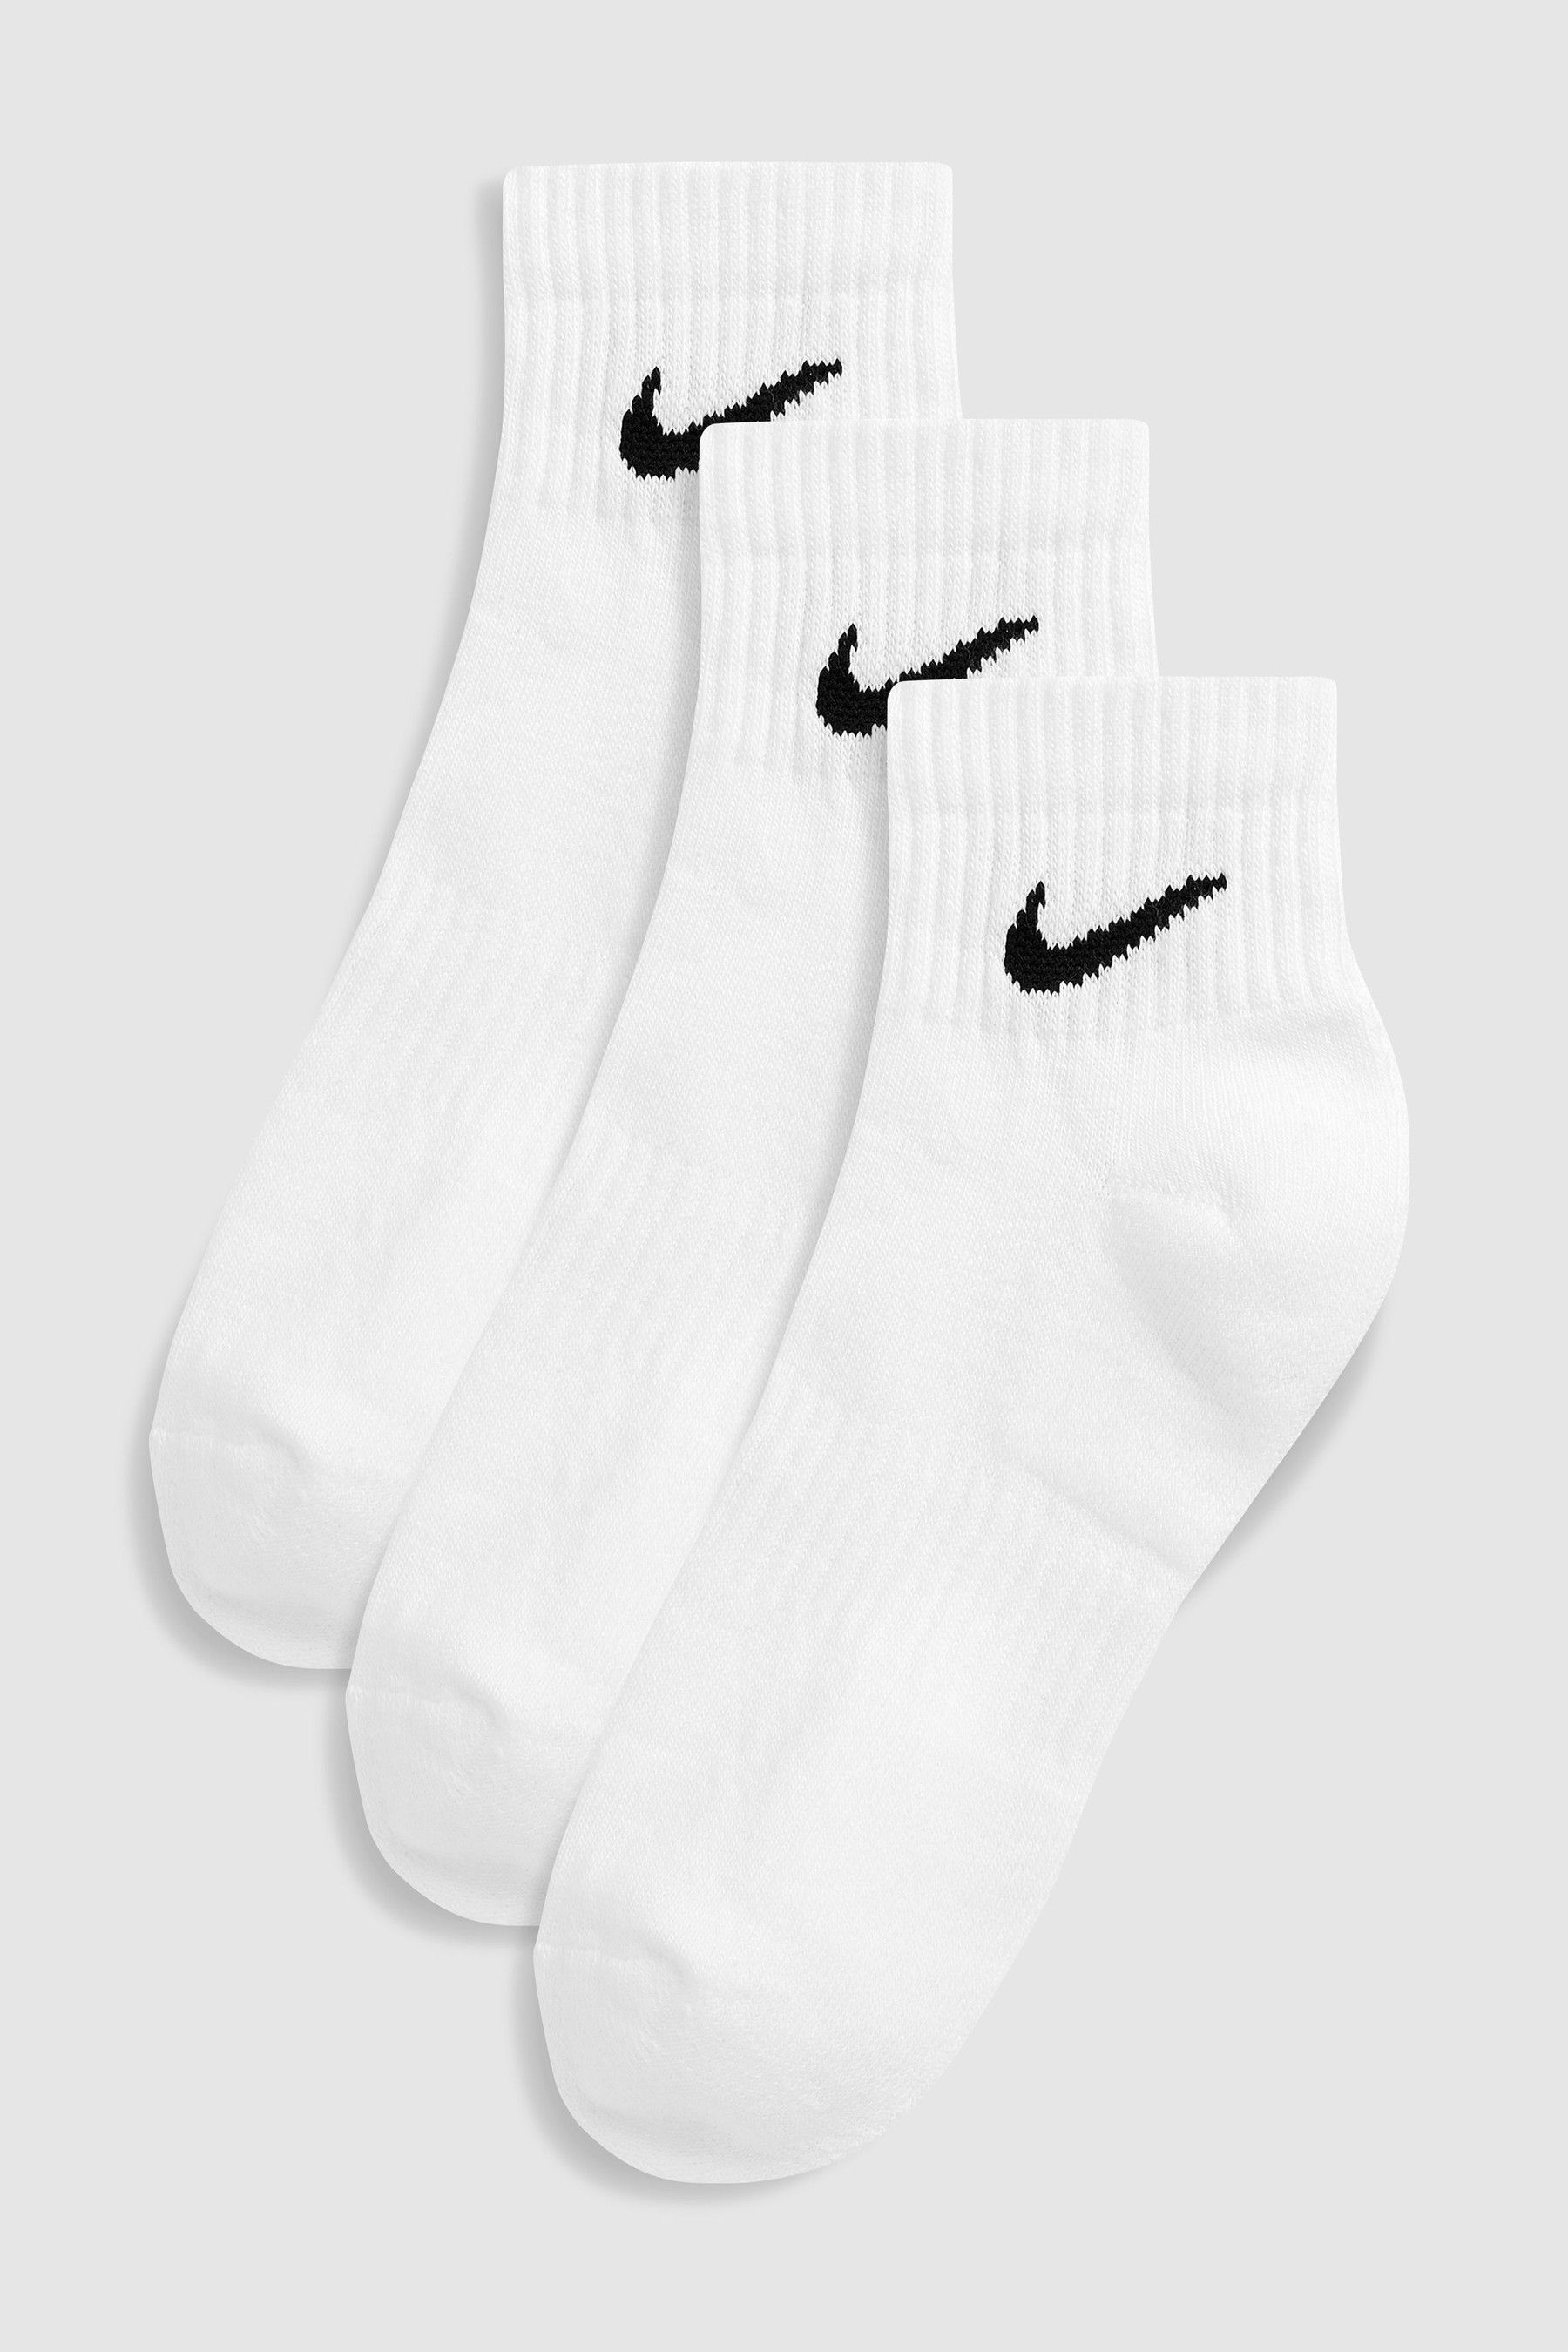 Buy Nike White Cushioned Ankle Socks Three Pack from the ...